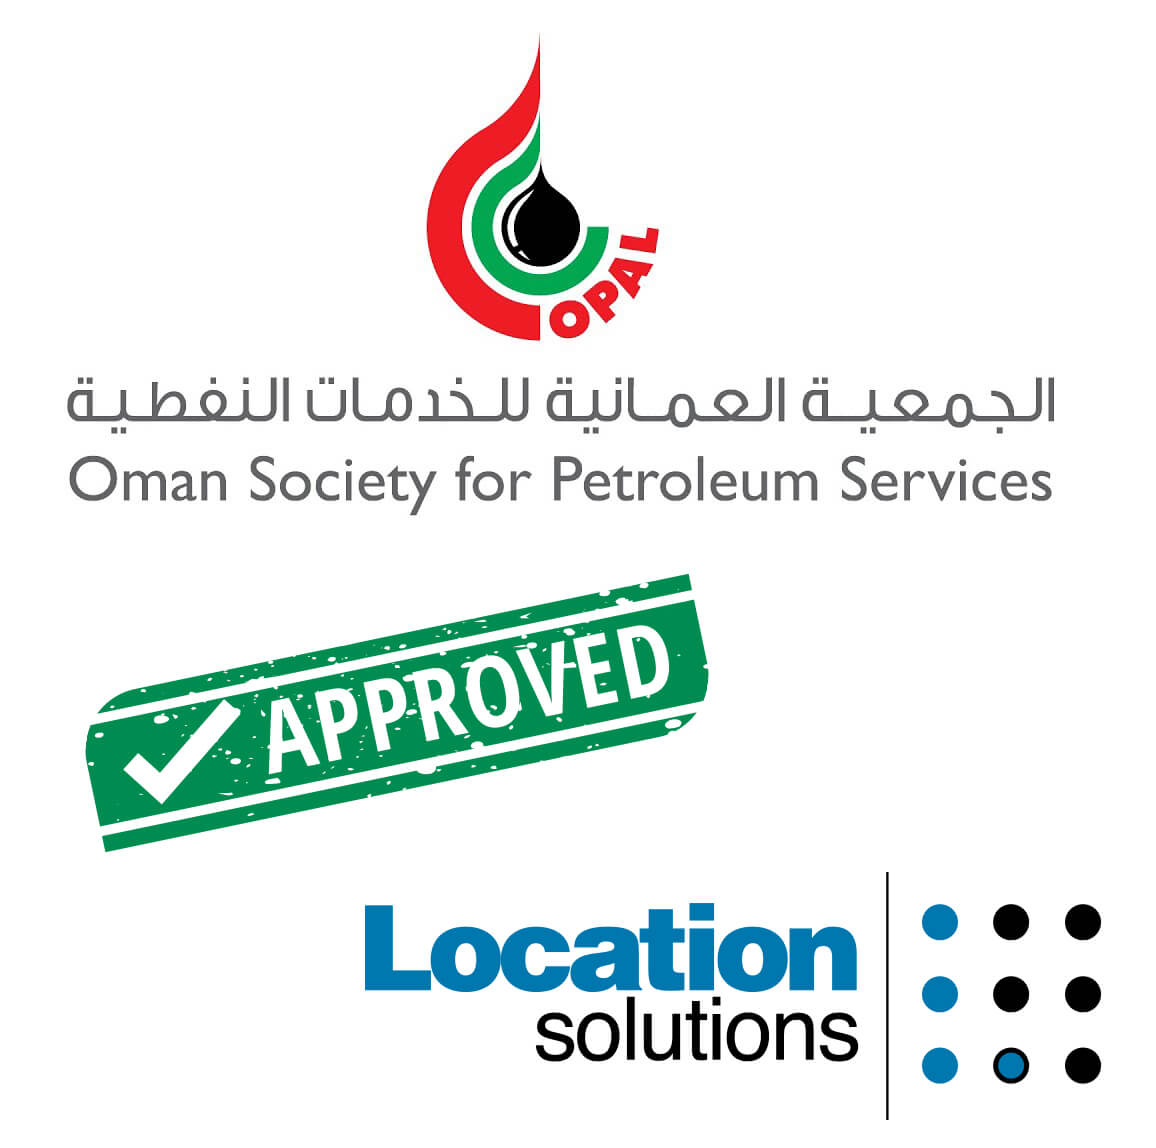 Oman Society for Petroleum Services OPAL Approved